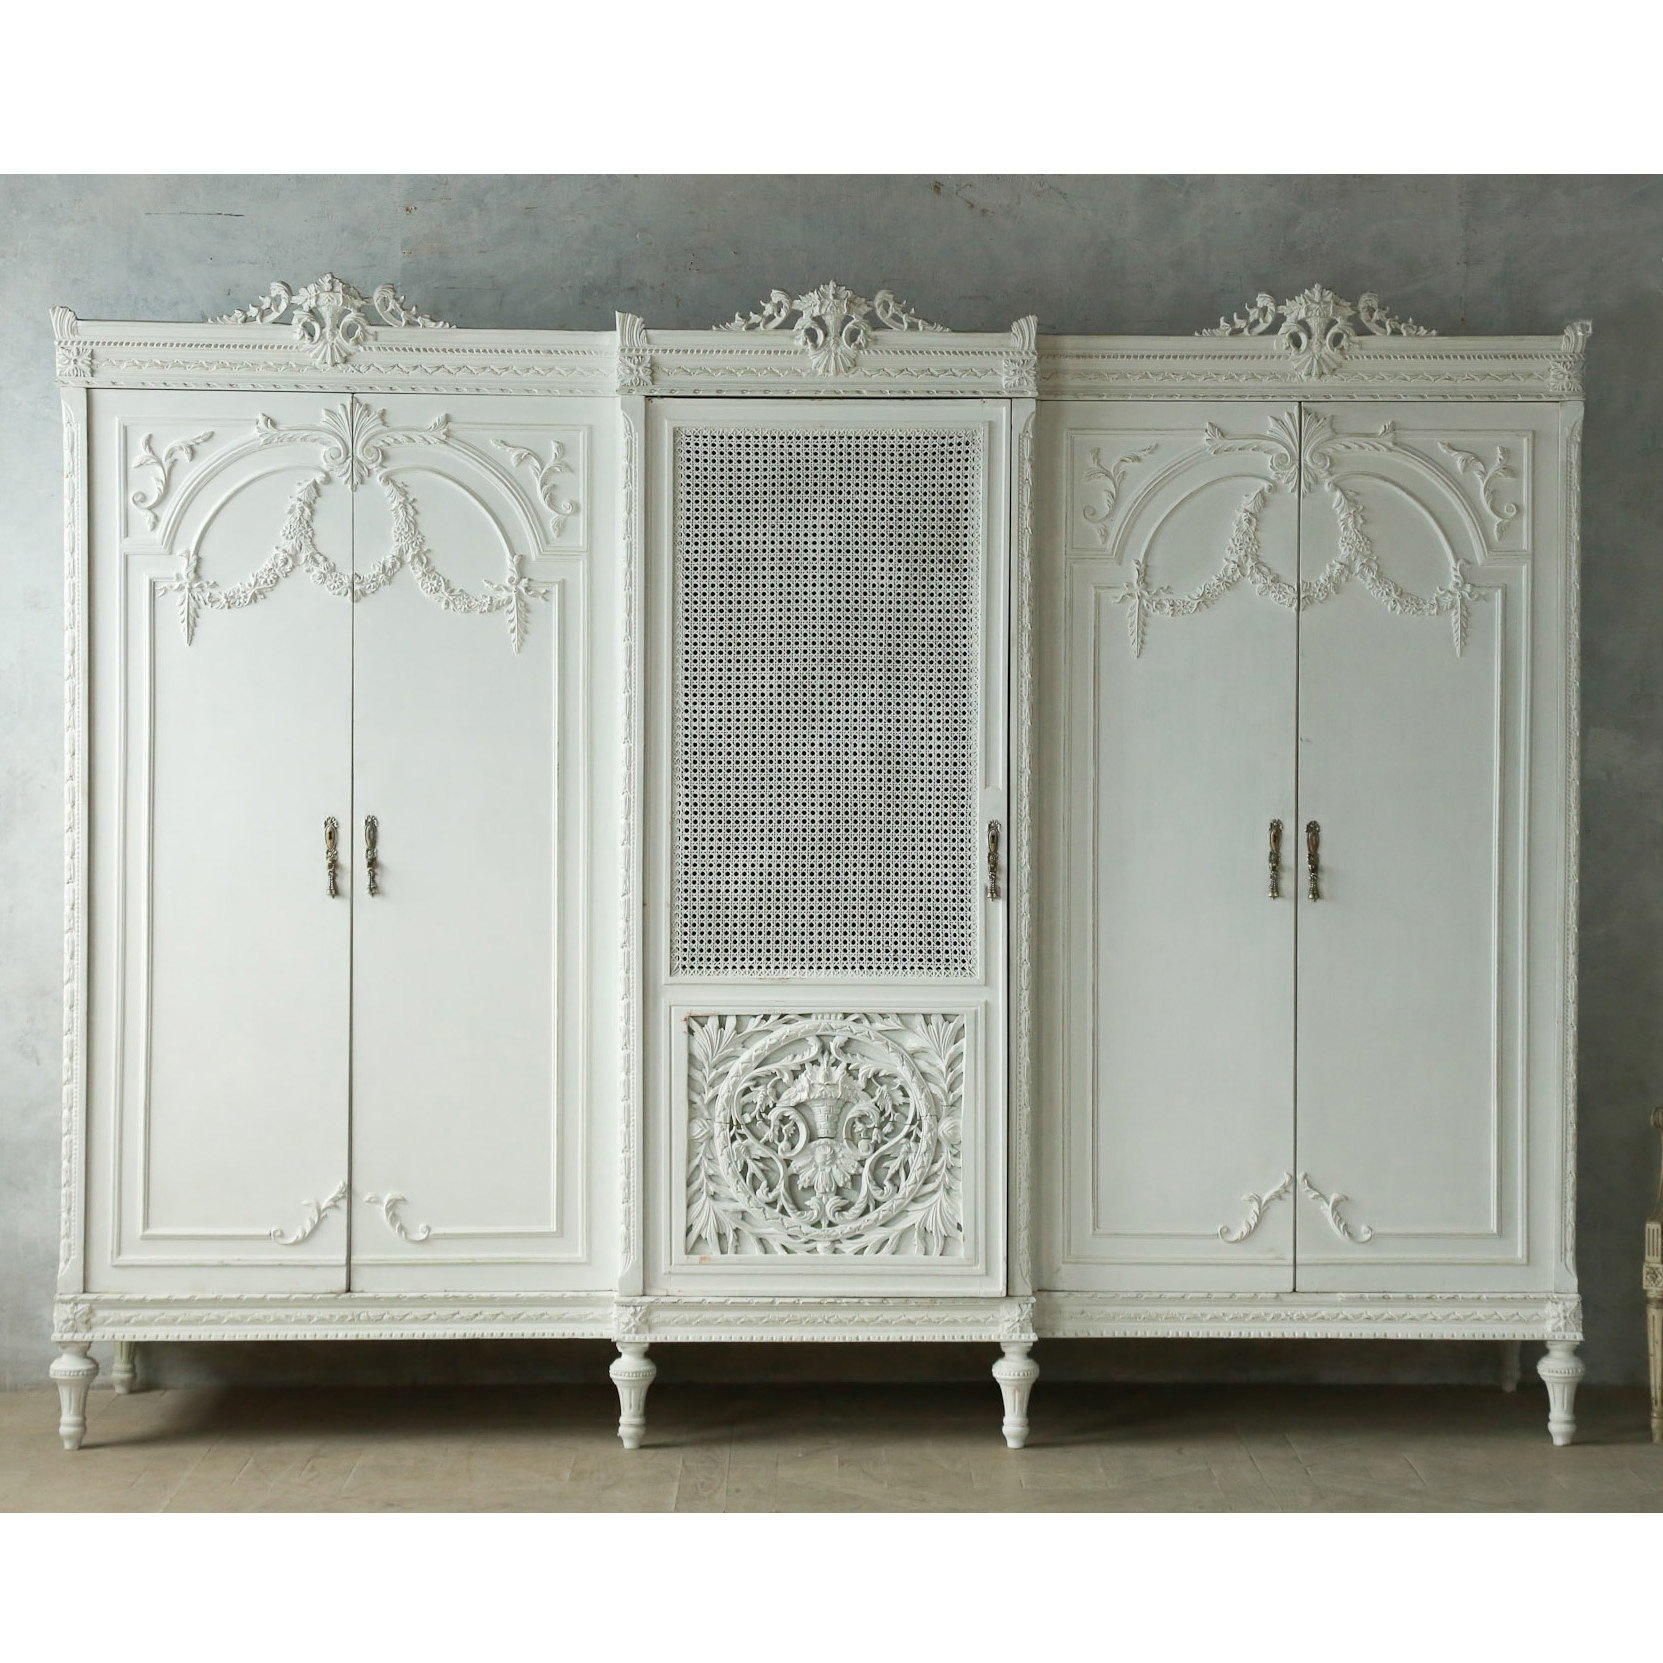 French Built In Wardrobes Within Trendy Vintage Louis Xvi Style Wardrobe Cane Grey French Rose Swag 5 Door (View 9 of 15)